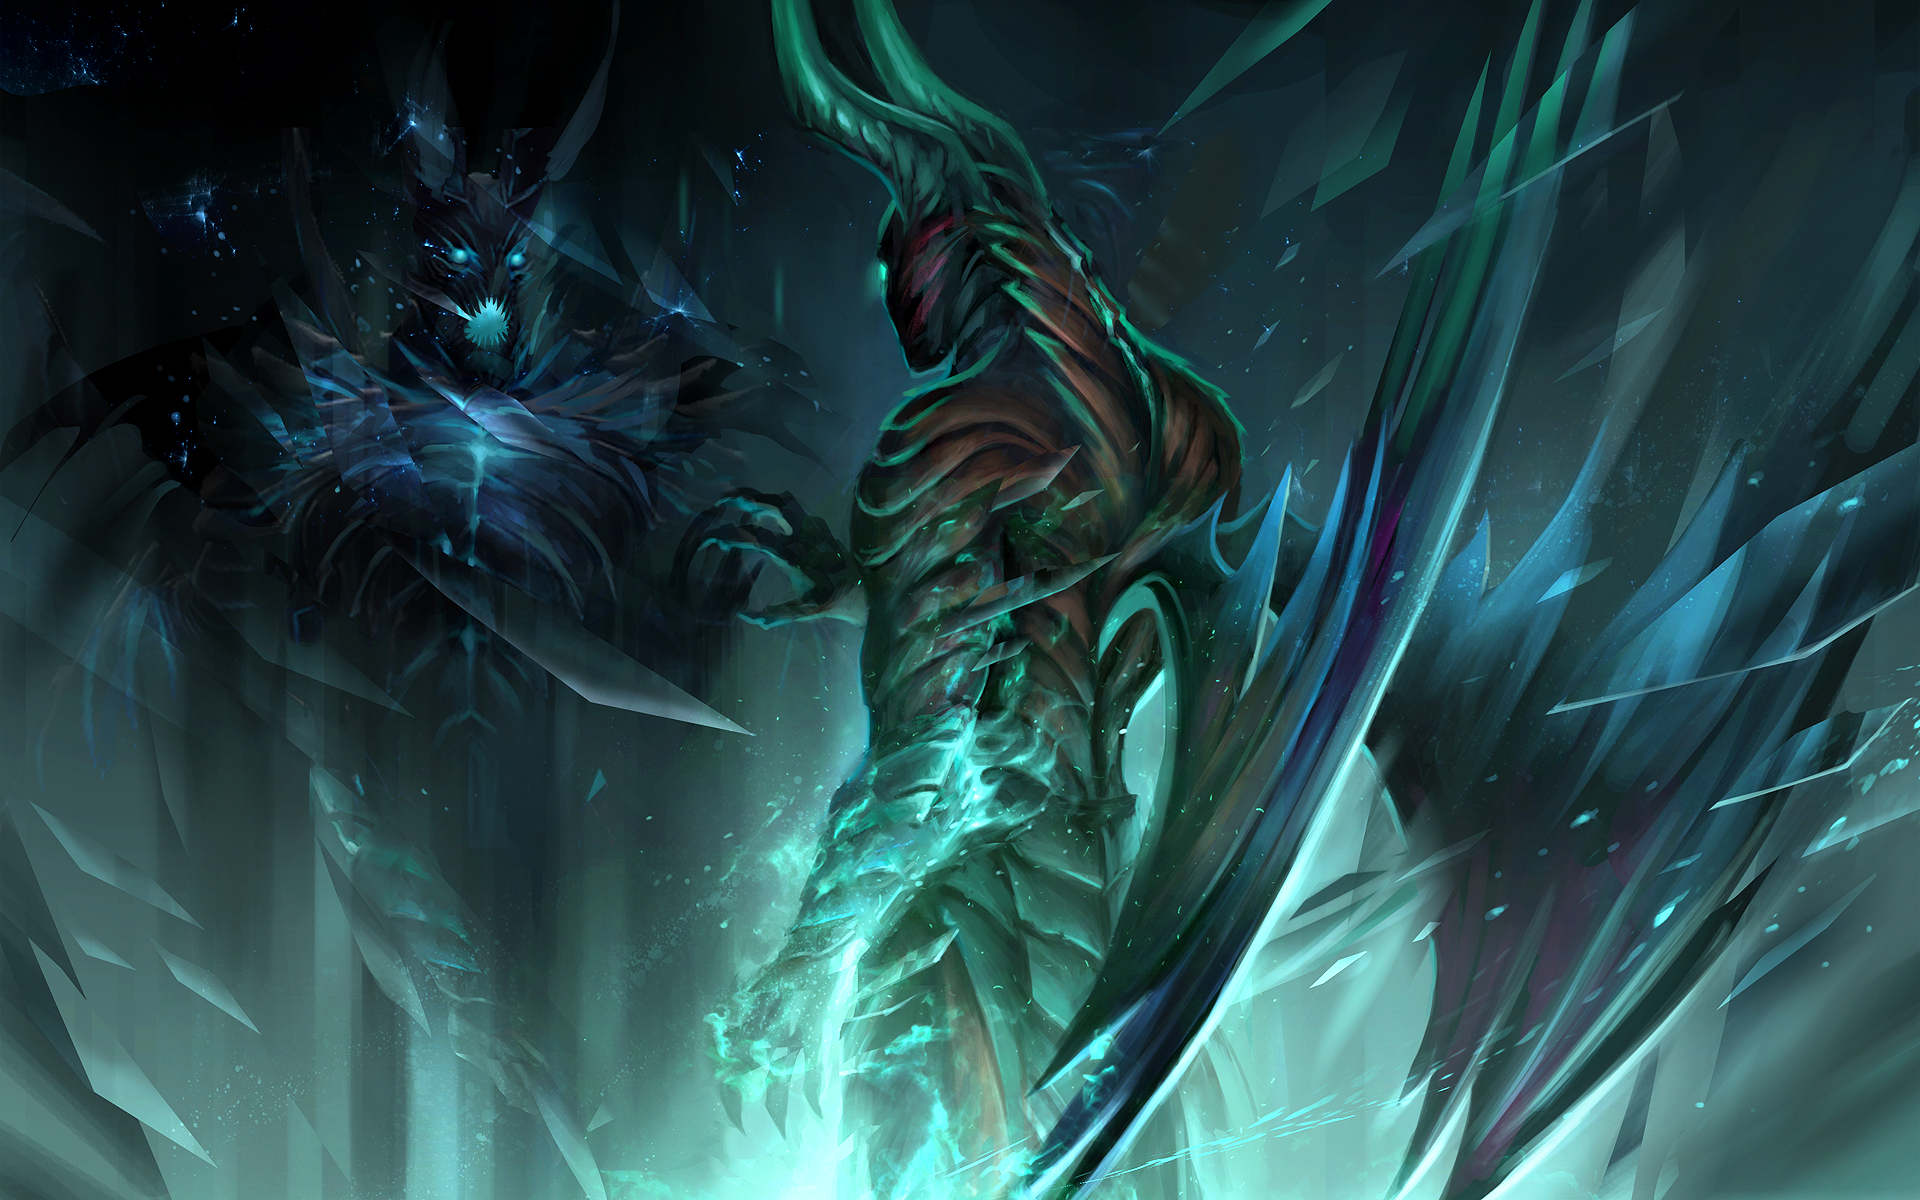 Terrorblade wallpaper by sandara on deviantart for Deviantart wallpaper